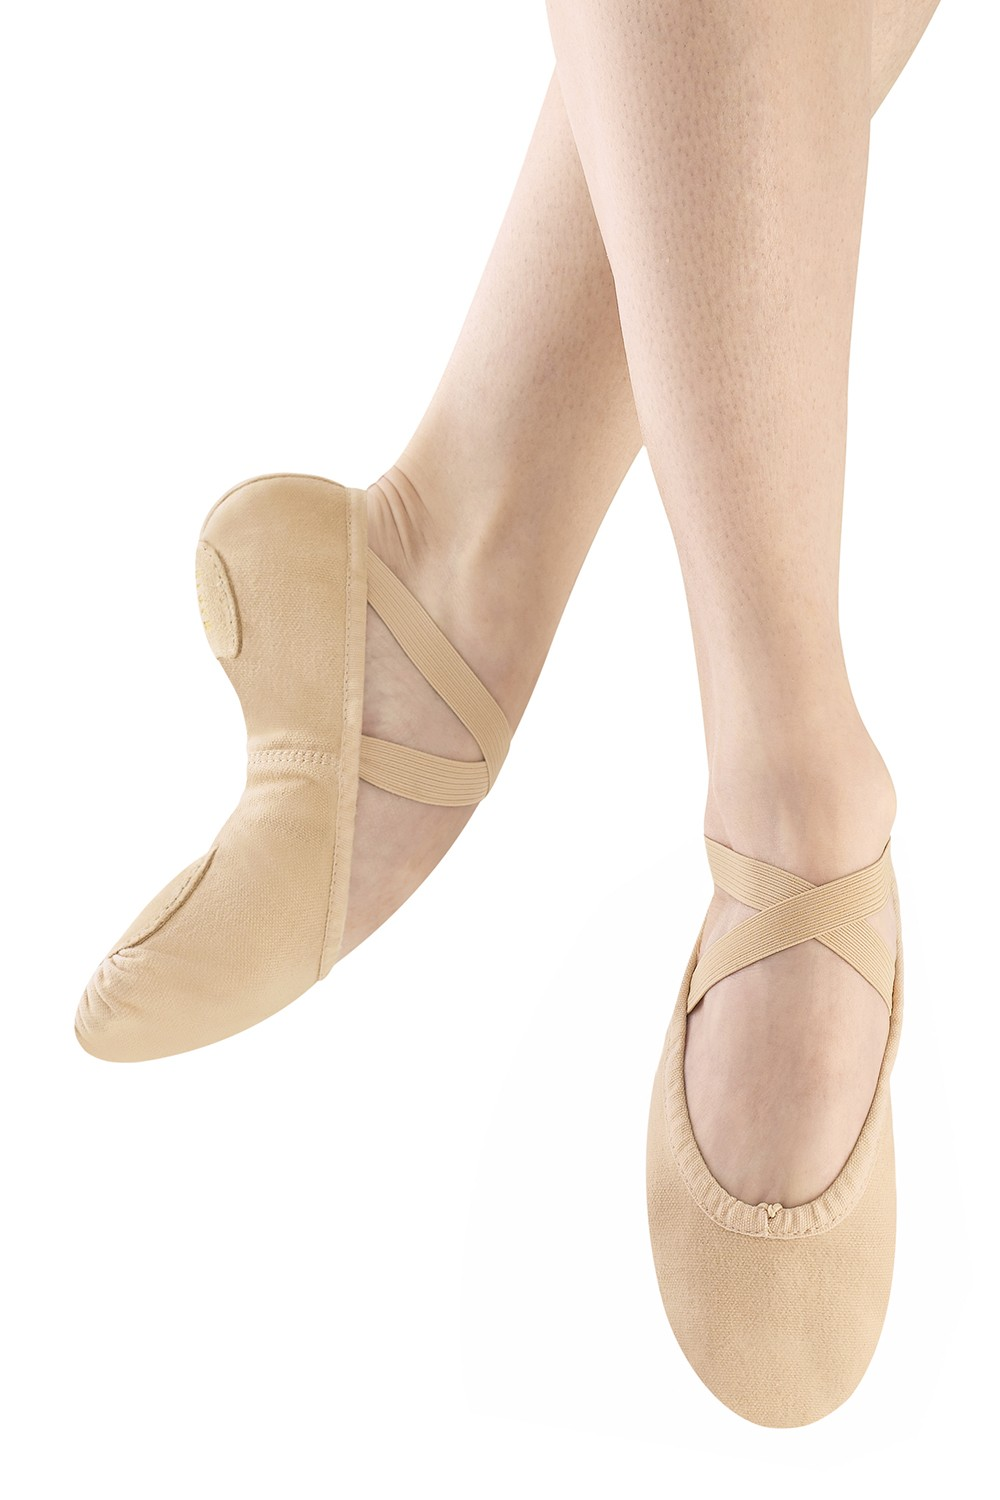 Proform Men's Ballet Shoes